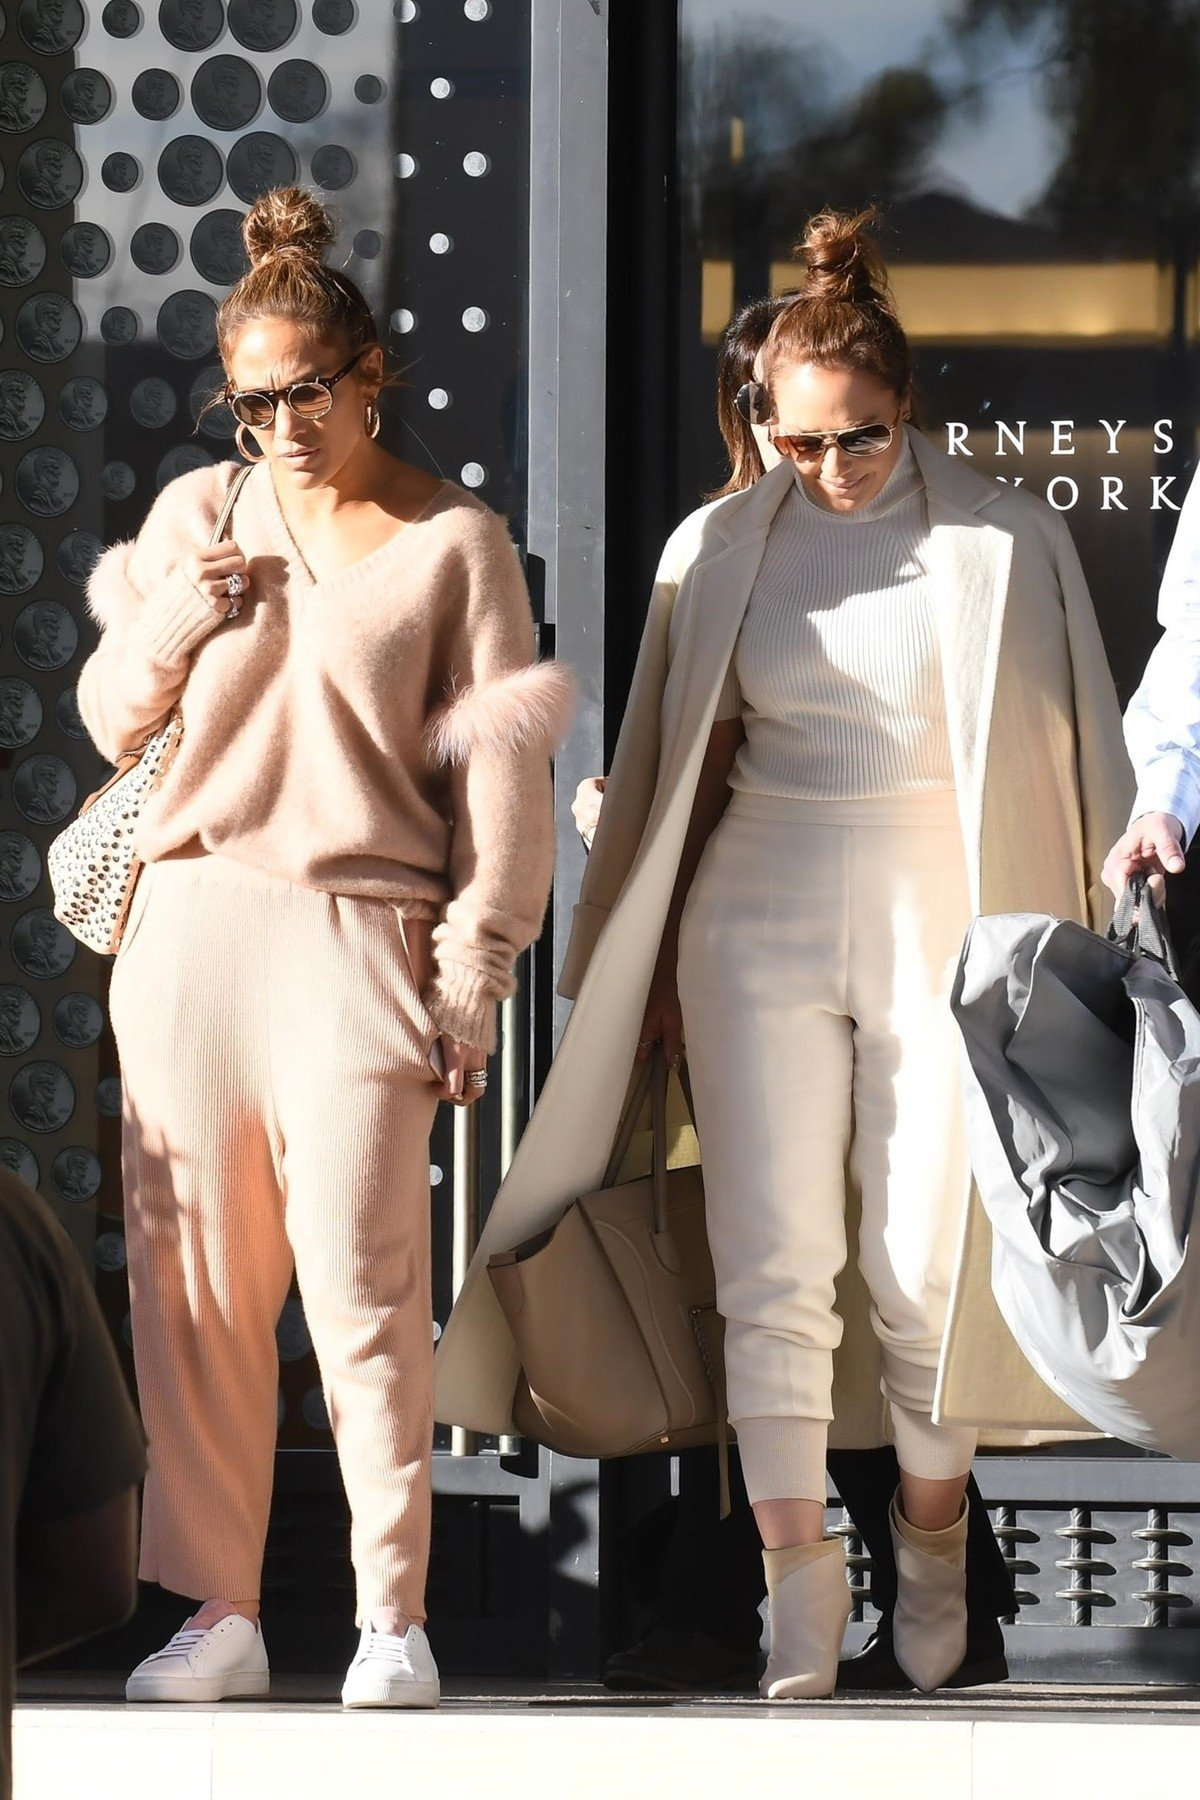 Los Angeles, CA  - Jennifer Lopez and BFF Leah Remini pose for a selfie with a fan while exiting Barneys New York this afternoon during a holiday shopping outing together. Leah grabs JLo's arm as she carefully goes down the stairs in her heels.  Pictured: Jennifer Lopez  BACKGRID USA 20 DECEMBER 2018, Image: 403705338, License: Rights-managed, Restrictions: , Model Release: no, Credit line: Profimedia, AKM-GSI